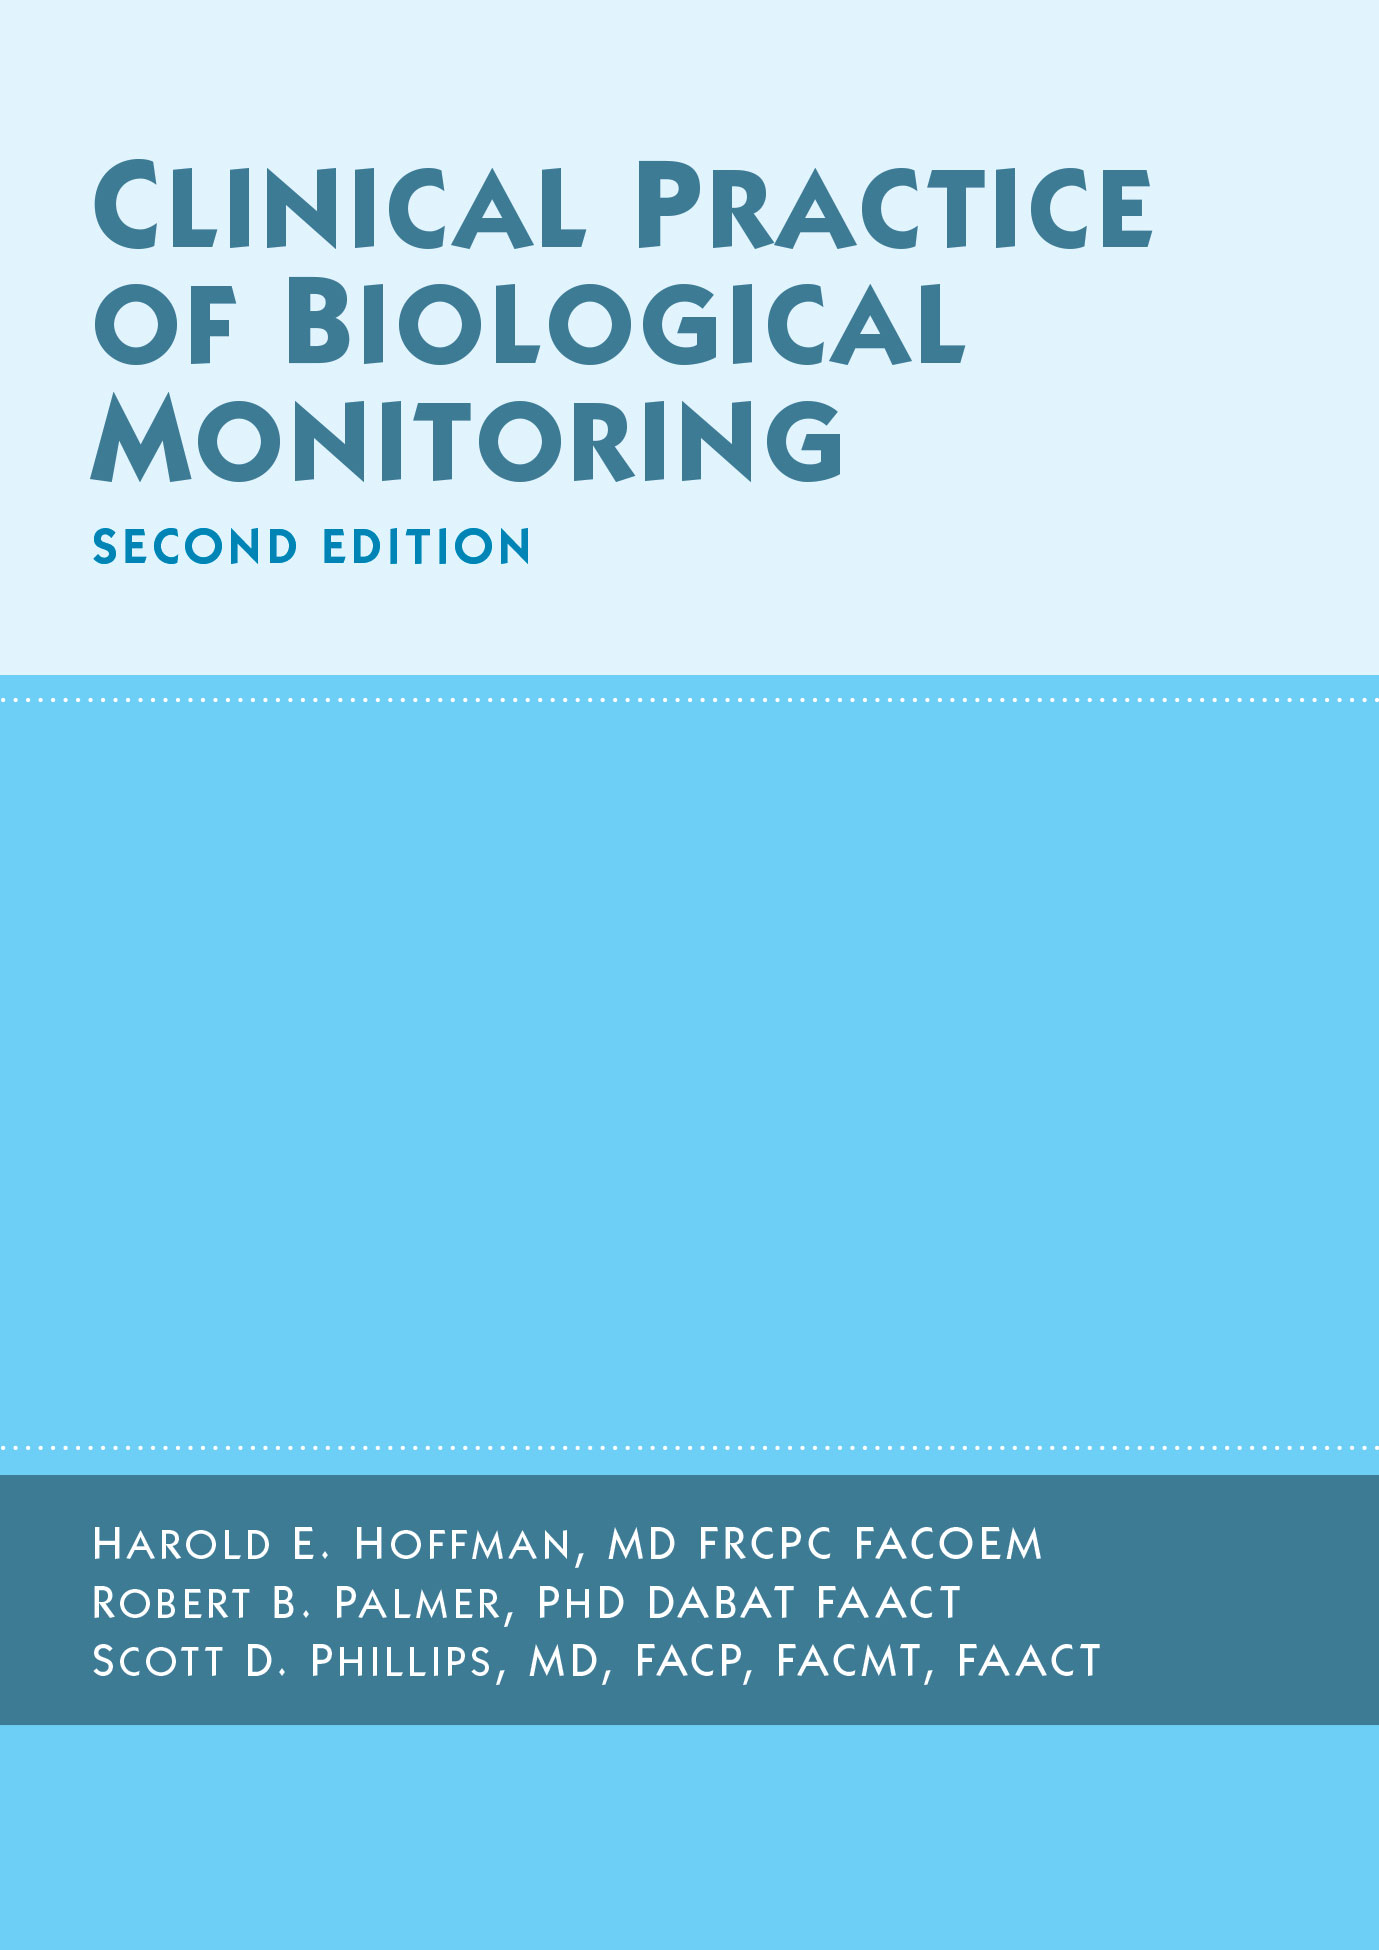 Clinical Practice of Biological Monitoring, Second Edition